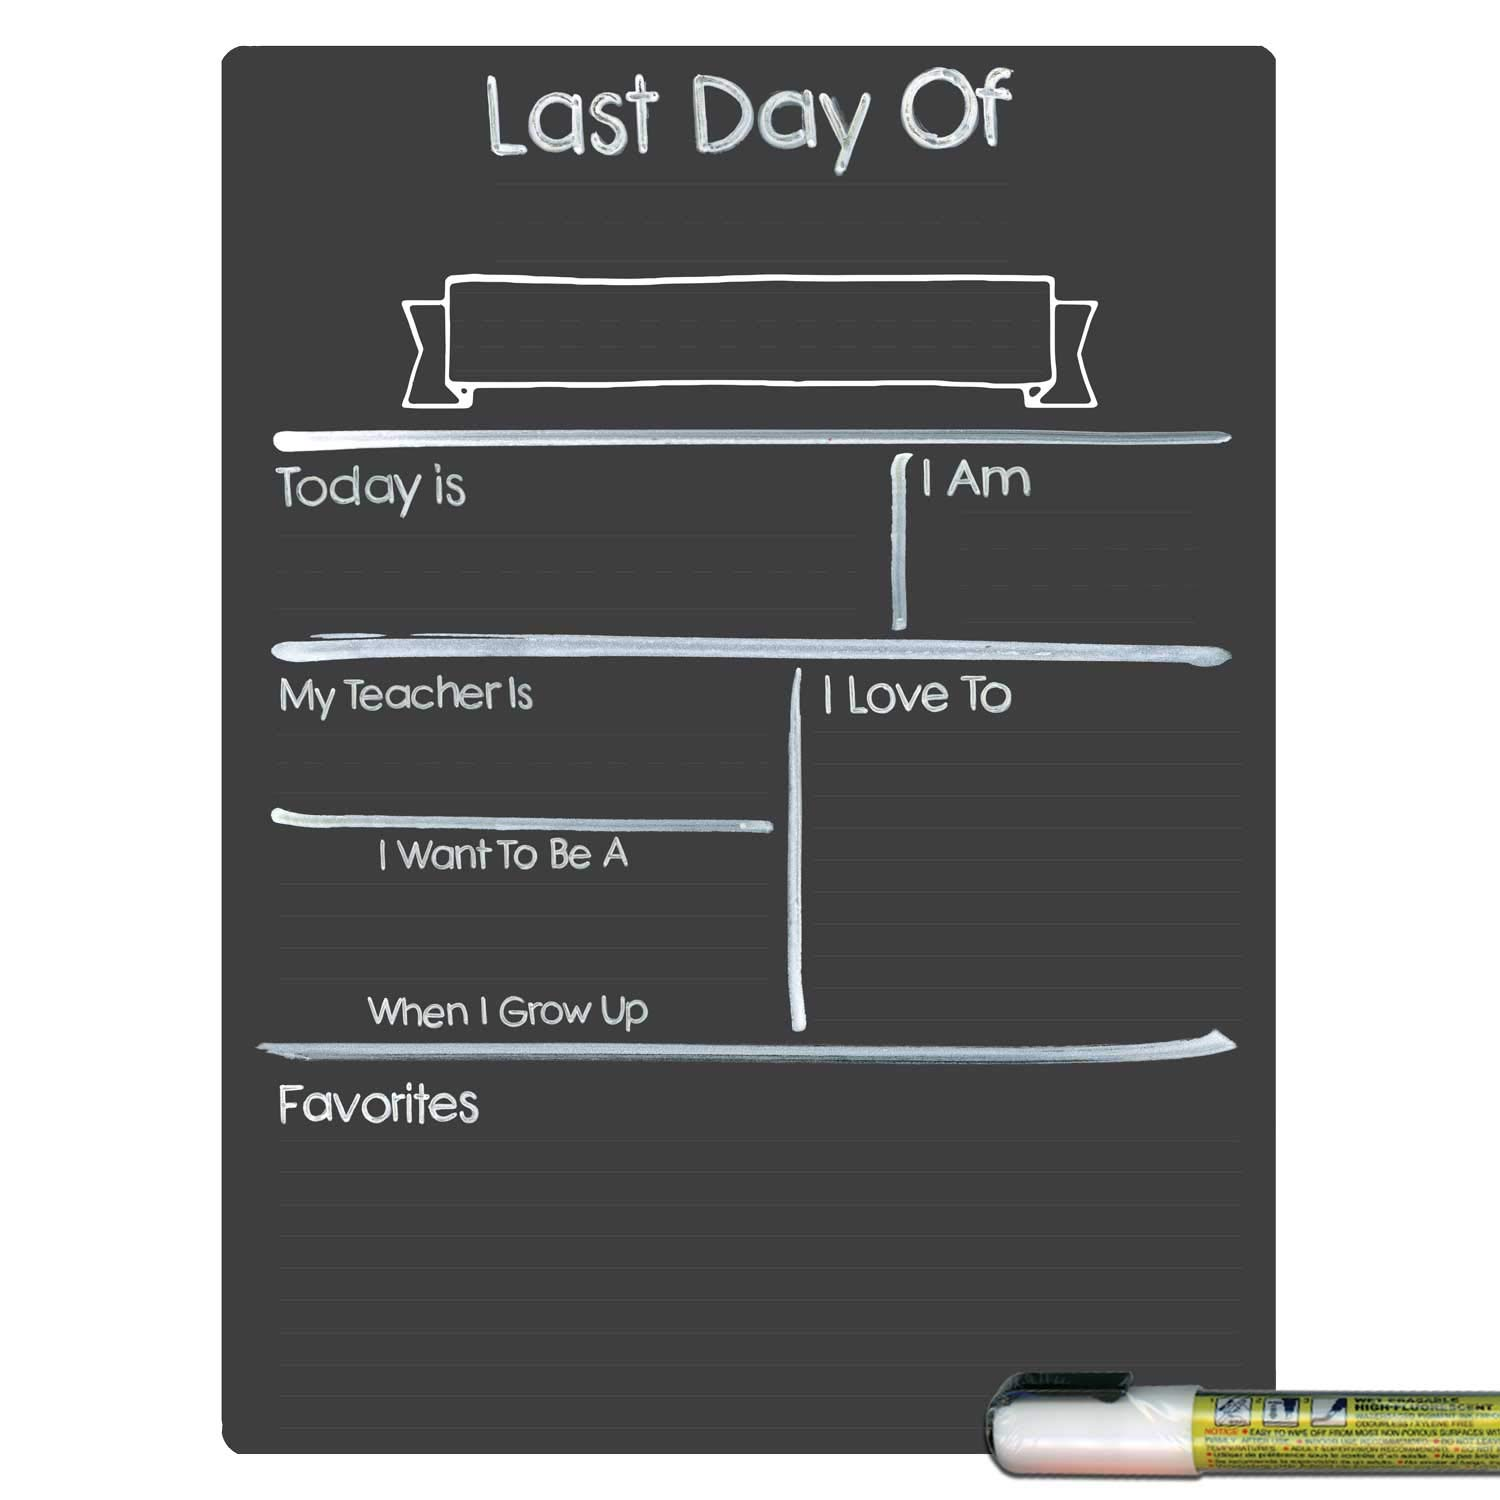 Cohas Design Your Own Last Day of School Milestone Board with Reusable Chalkboard Style Surface, 9 by 12 Inches, White Marker